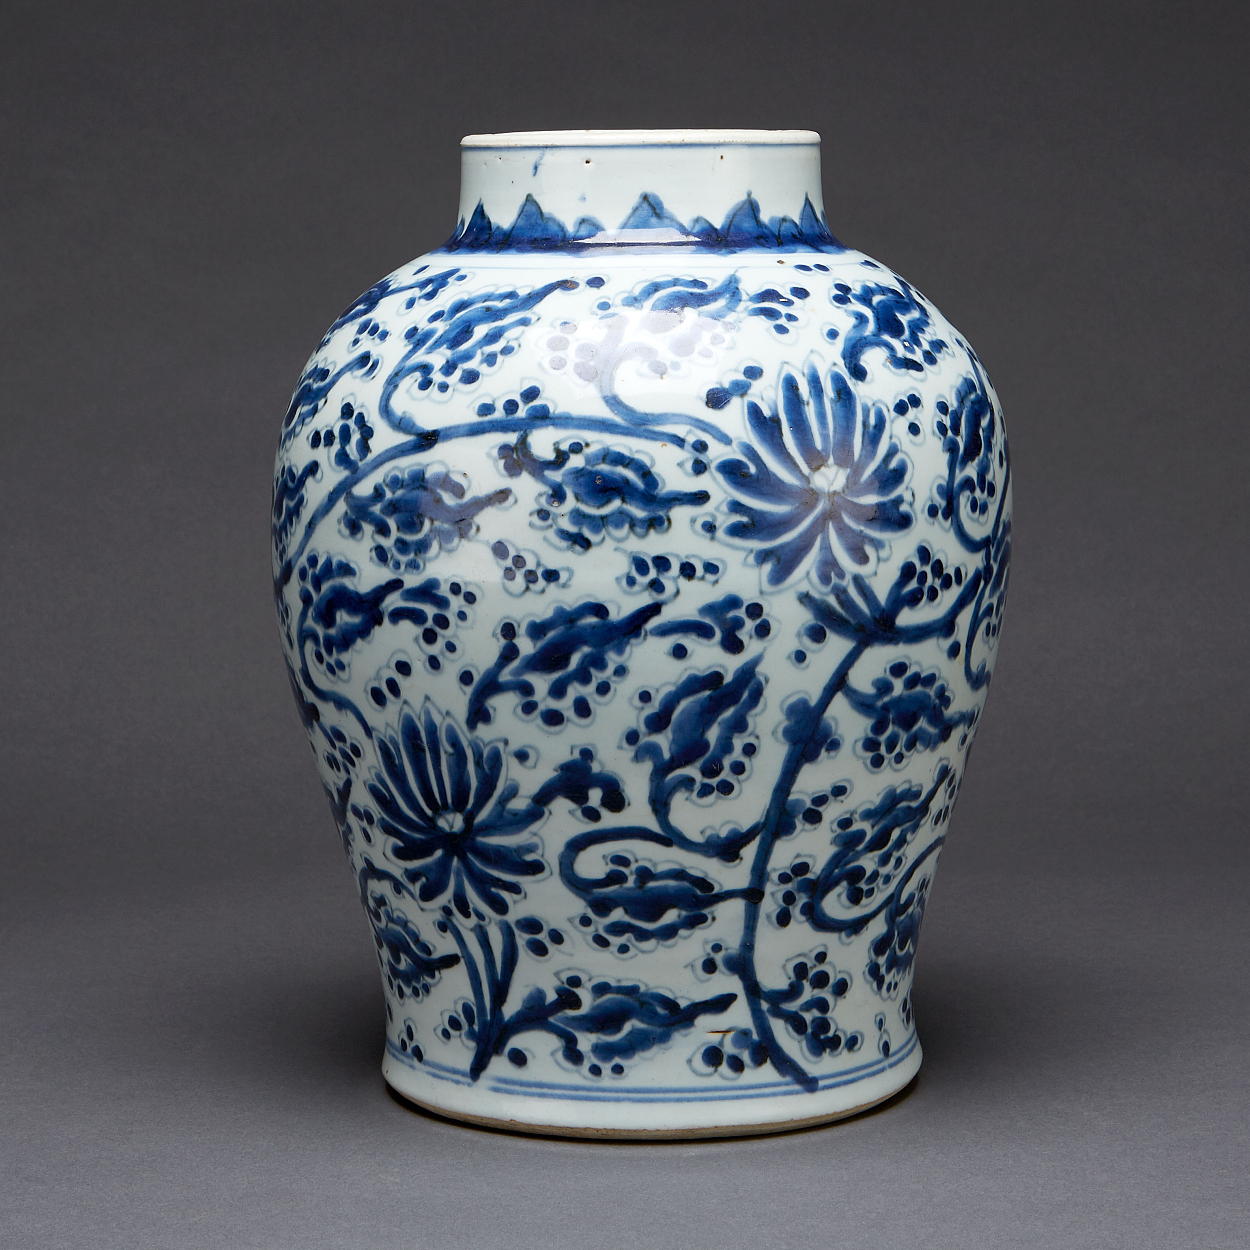 A Blue and White Lotus Jar